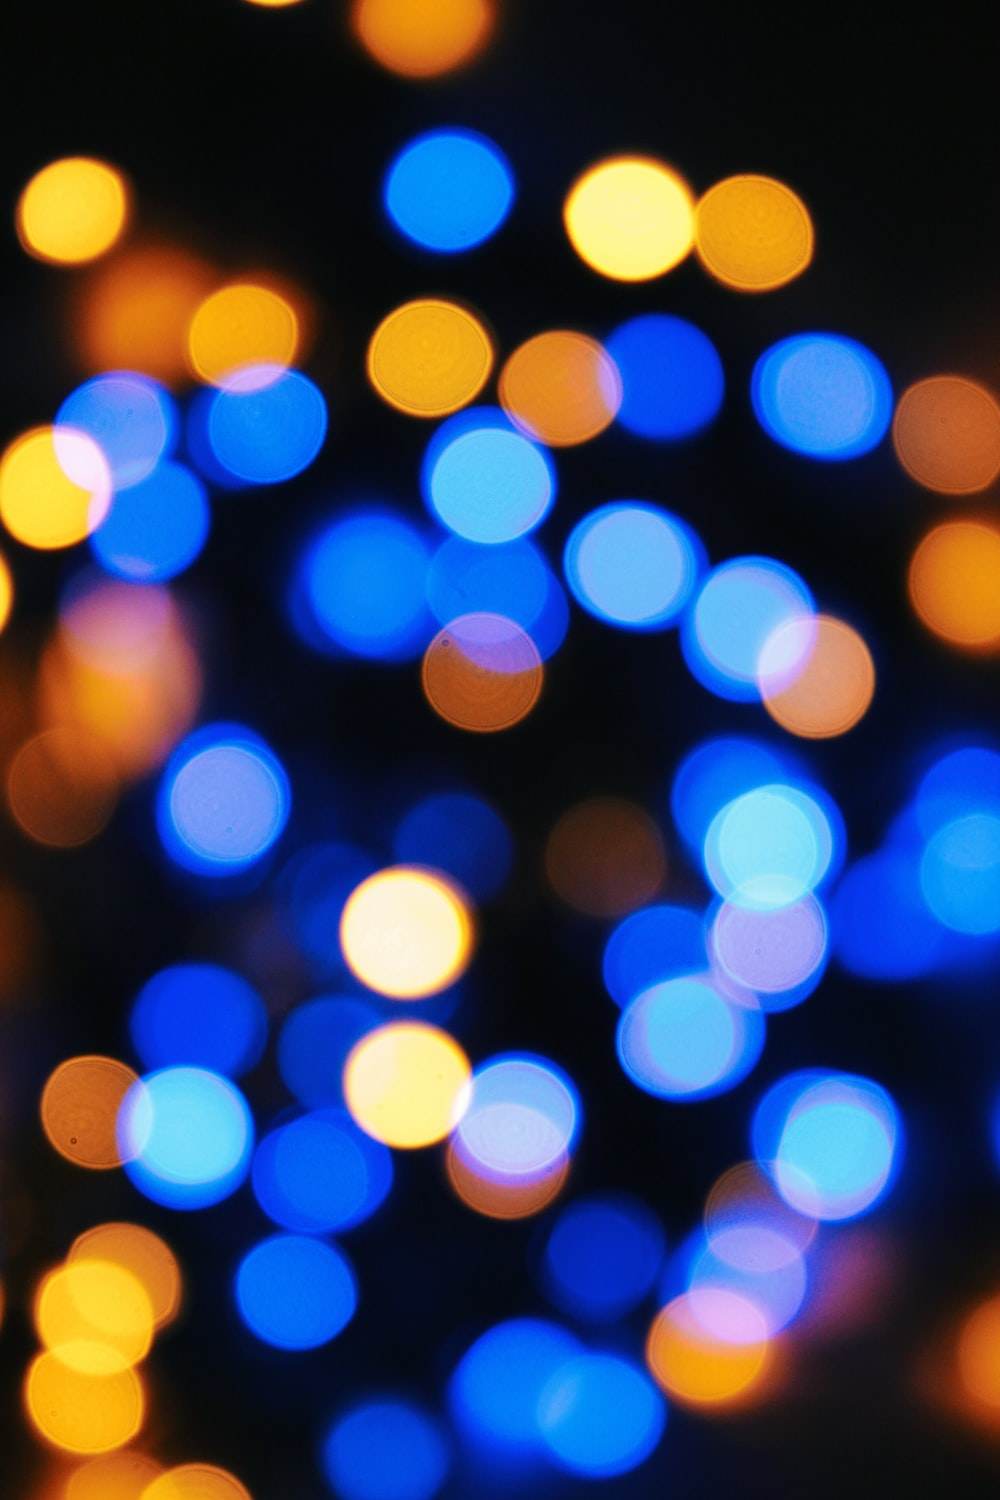 Hd Png Background - 500+ Stunning Bokeh Pictures [HD]   Download Free Images & Stock ...